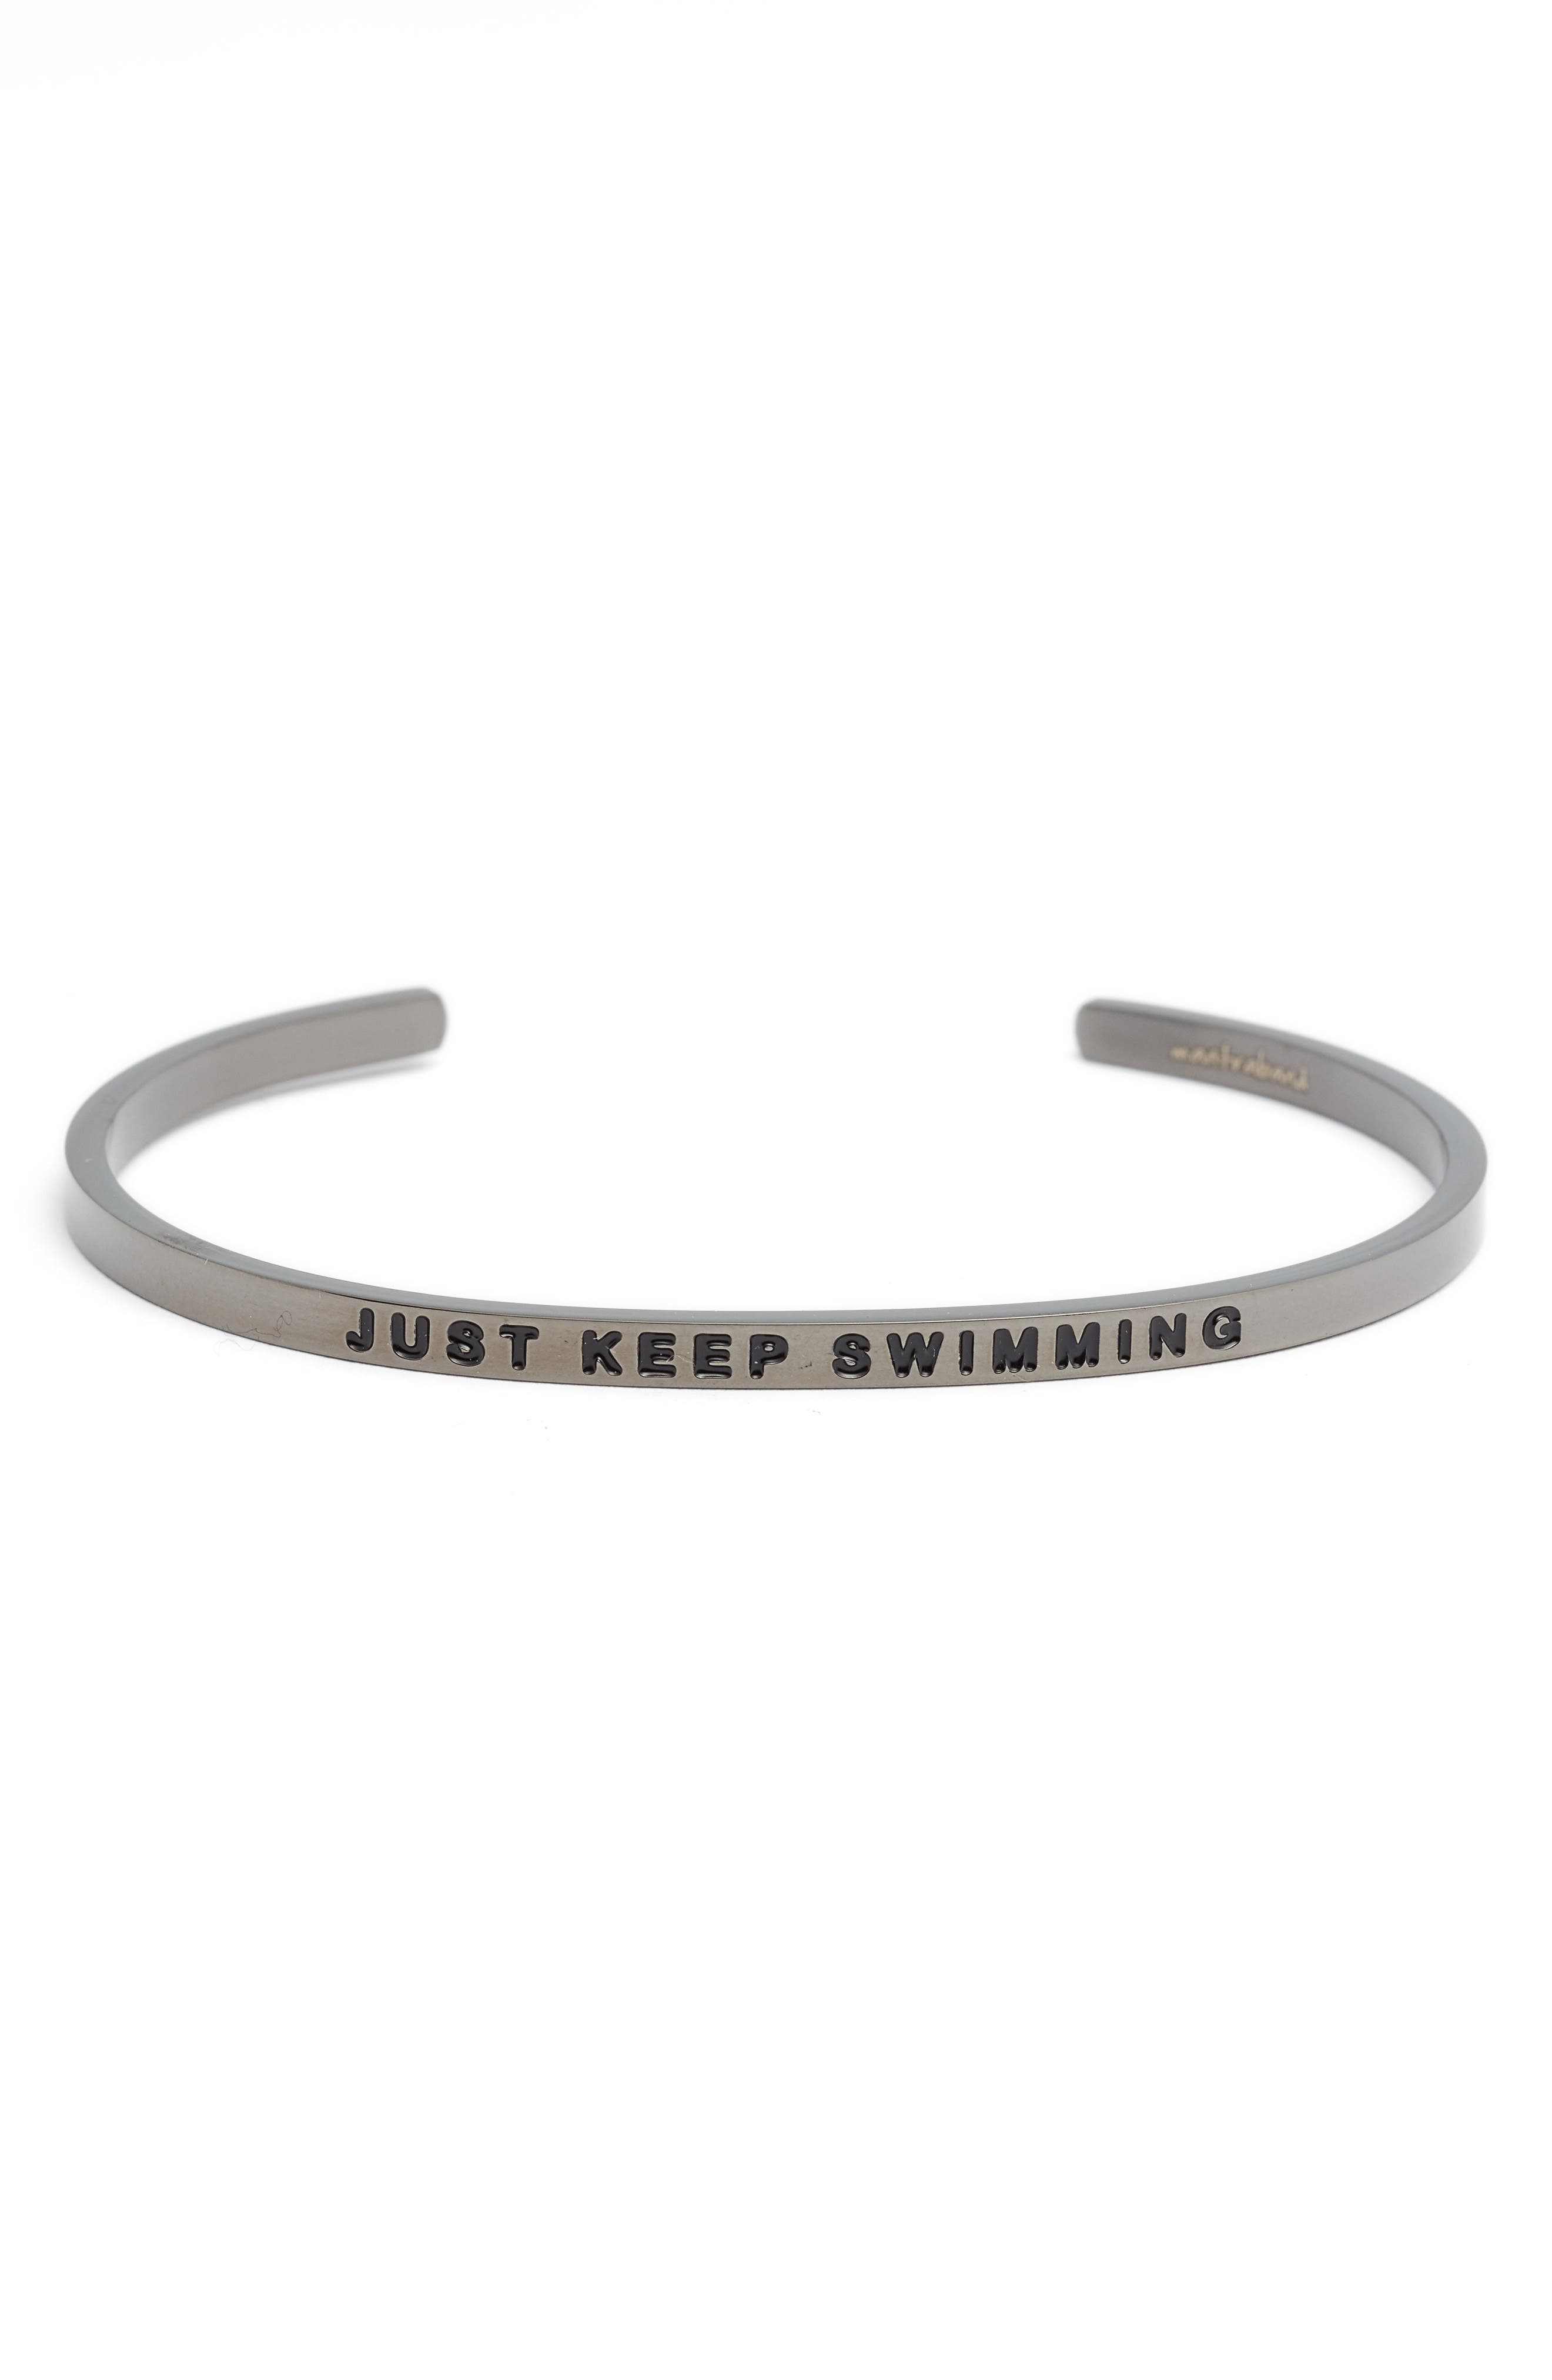 Just Keep Swimming Engraved Cuff,                         Main,                         color, 021